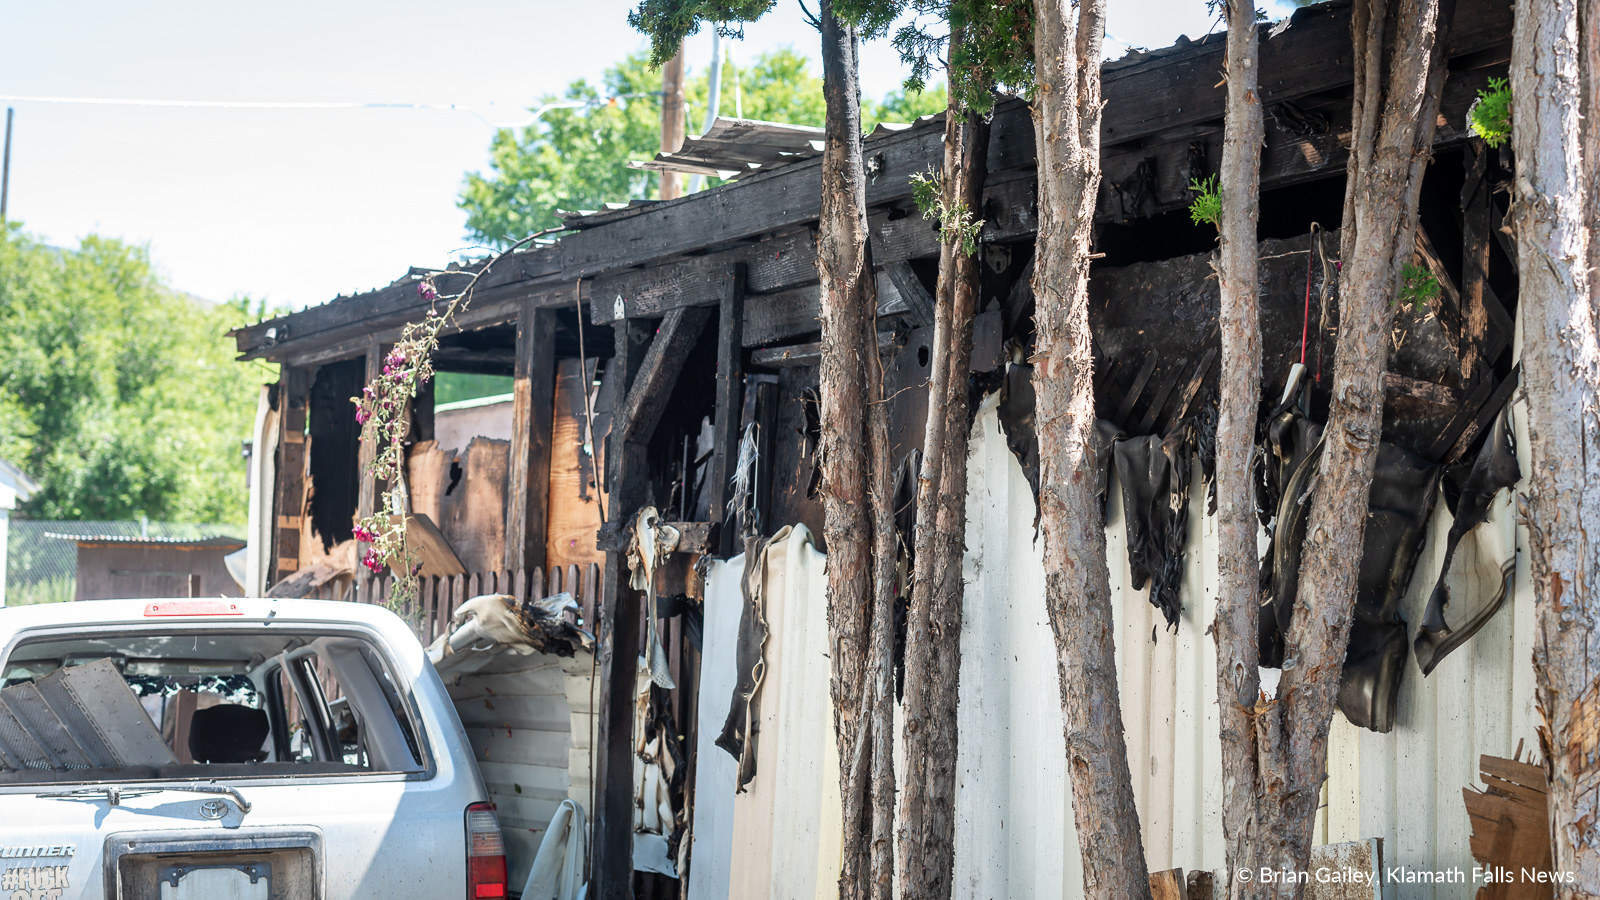 The cause of a house fire at the Plaza Manor Manufactured Home Park is still under investigation. July 4, 2019 (Image, Brian Gailey / Klamath Falls News)